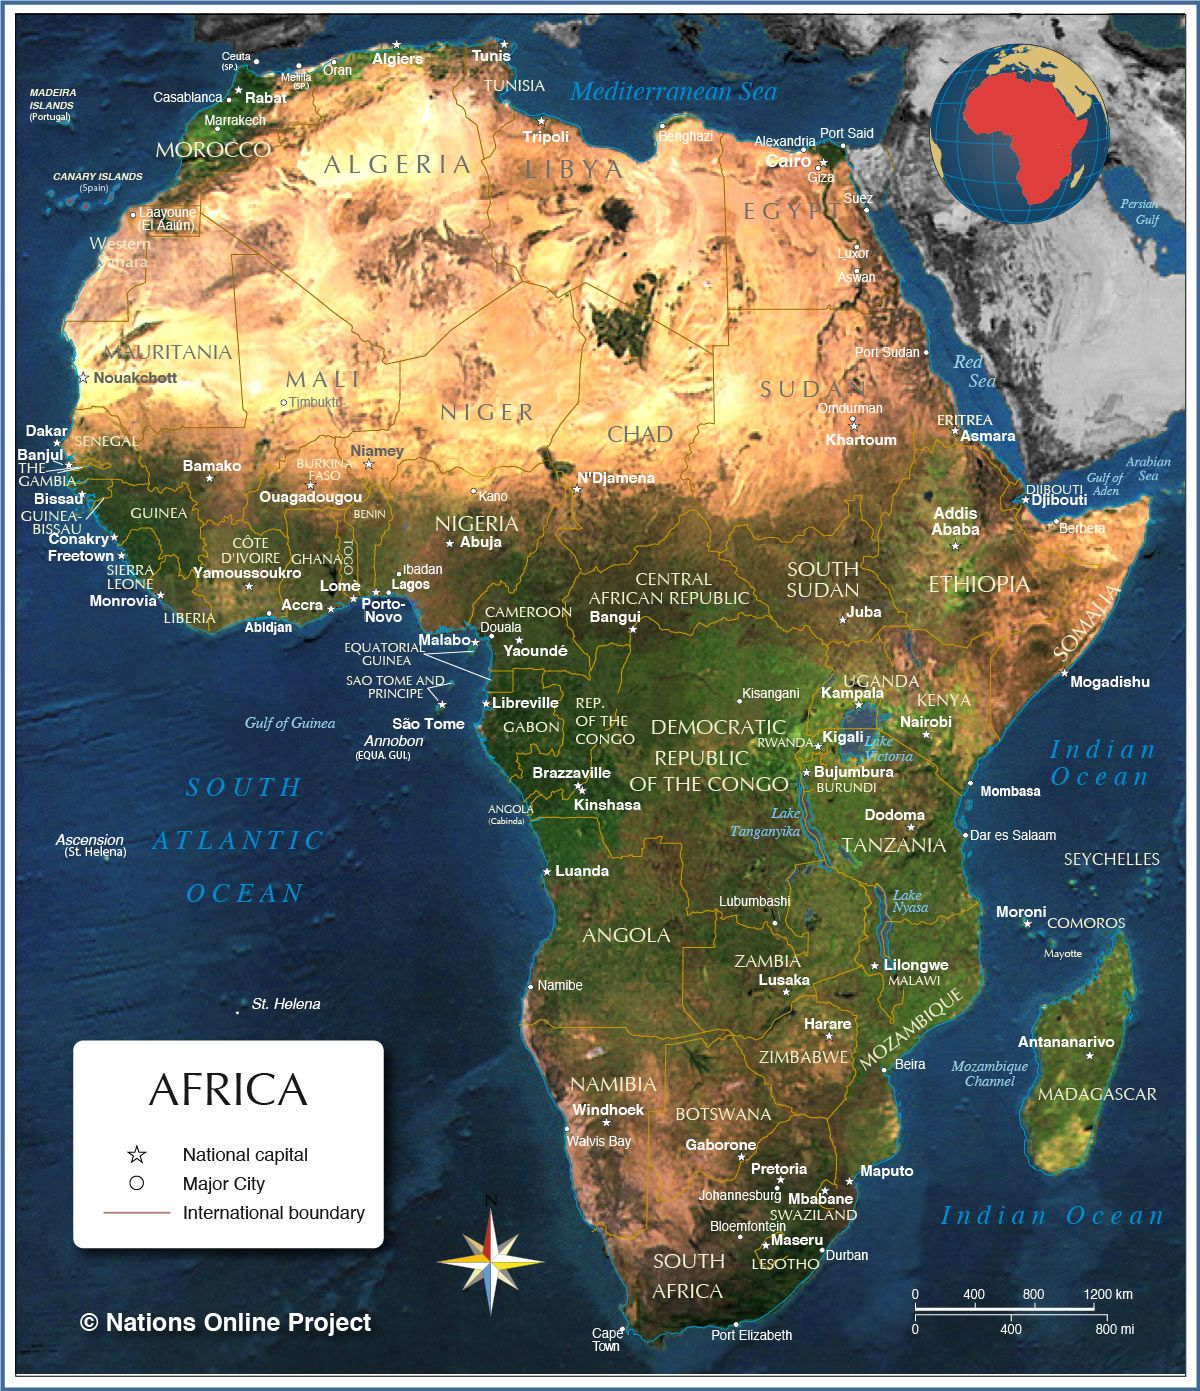 Africa Nations Map.Map Of Africa Countries Of Africa Nations Online Project